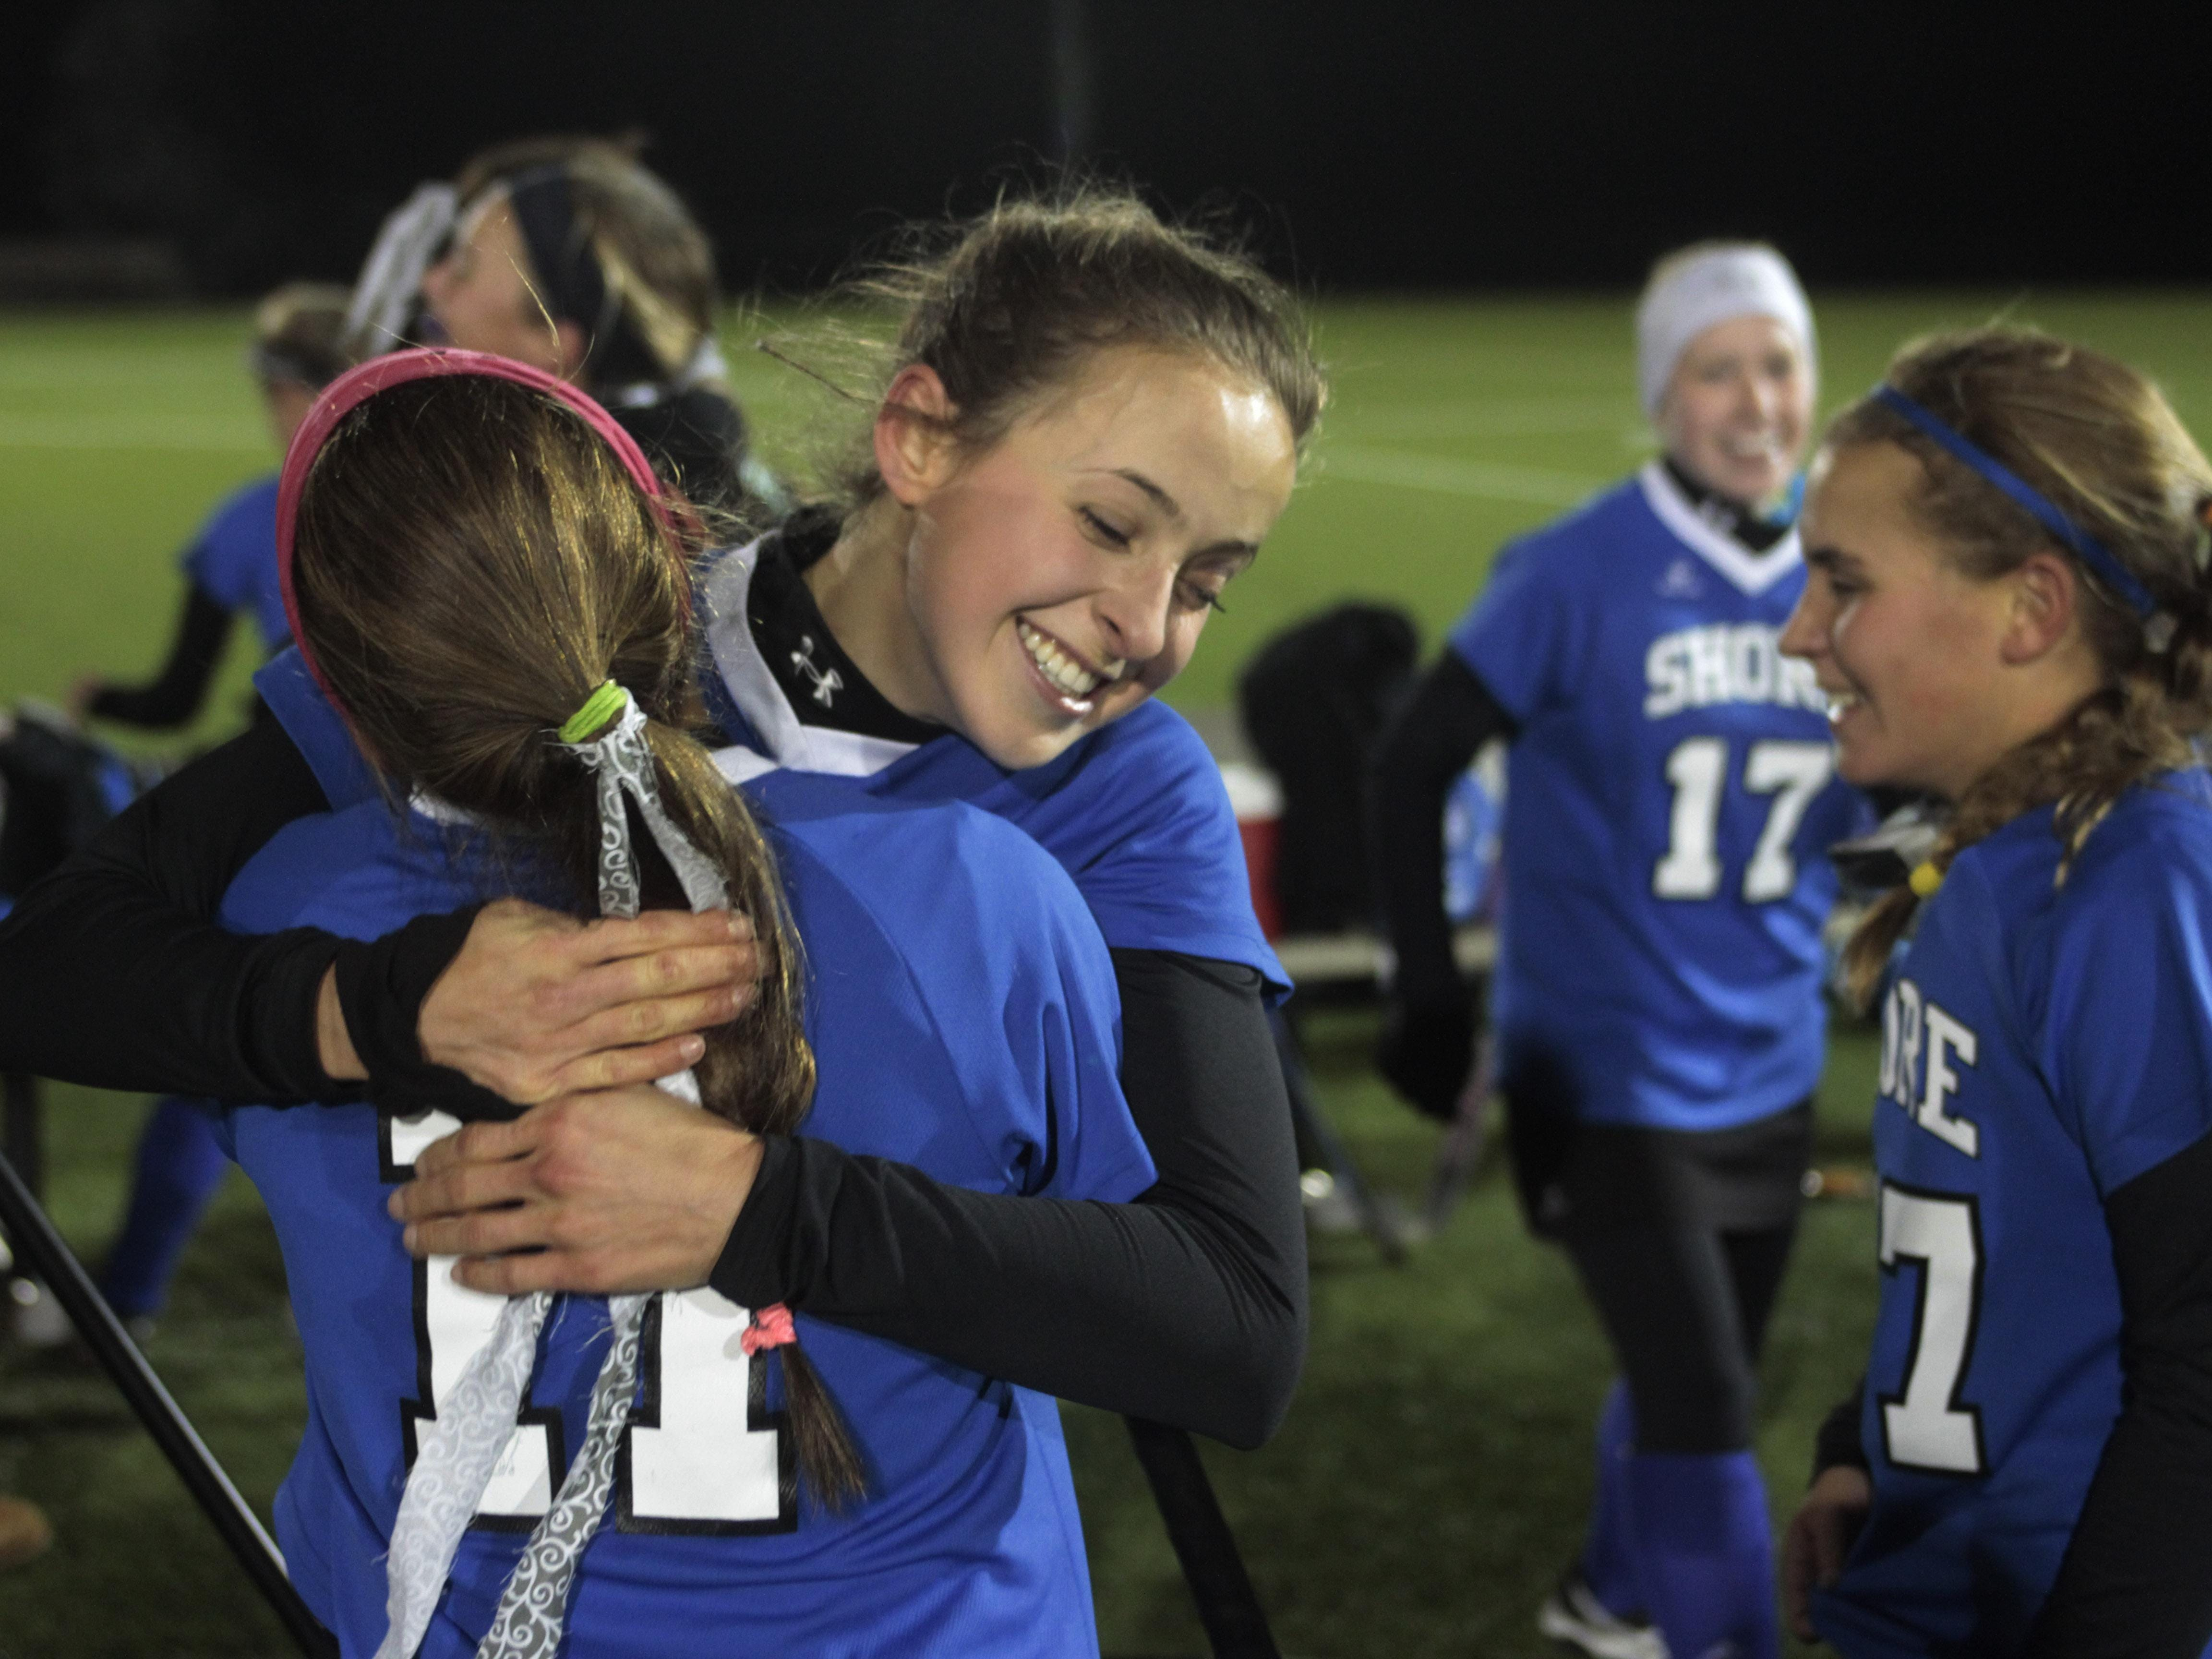 Annie Deusch gets a hug from team mate Veronica Goldberg (facing camera) as they celebtate their group 1 title. Shore Regional vs Collingswood NJSIAA Field Hockey Group I Finals in Bordentown, NJ on November 145, 2014. Peter Ackerman /Staff Photographer